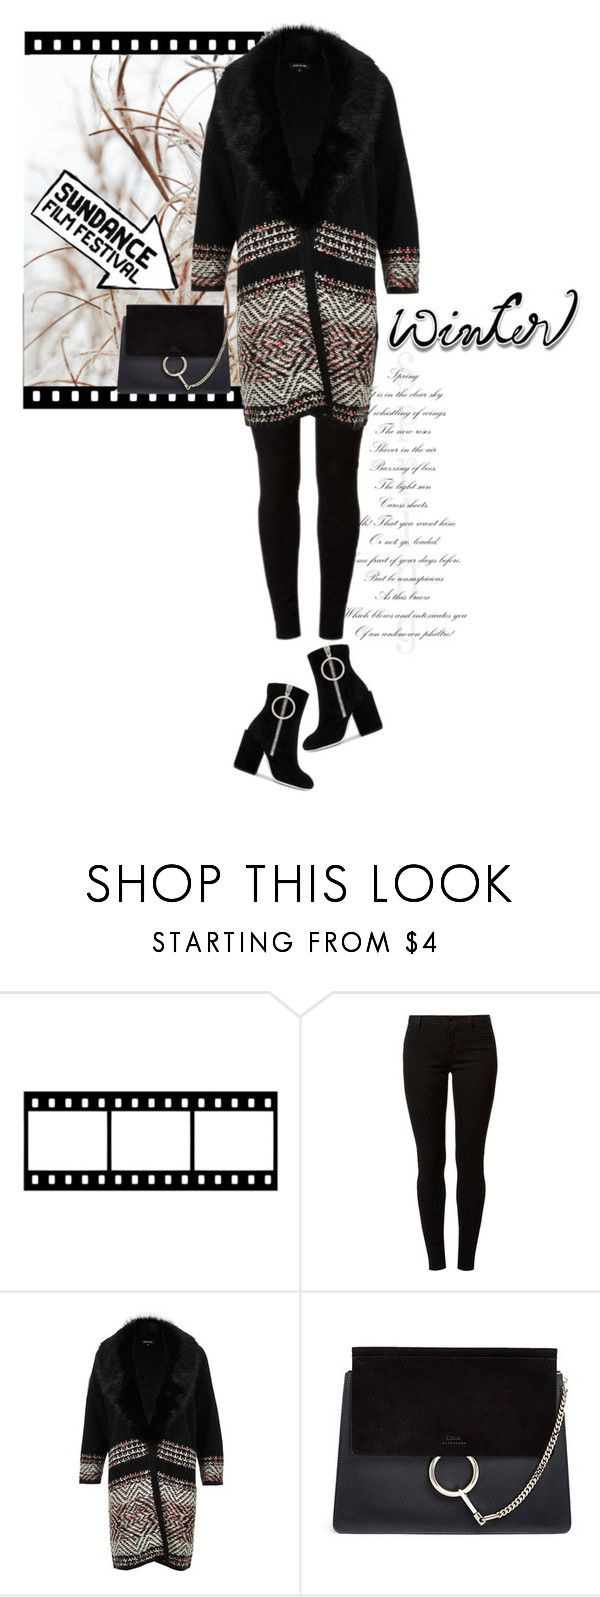 """""""SUNDANCE Film Festival"""" by larizoid ❤ liked on Polyvore featuring Dorothy Perkins, River Island, Chloé and Off-White"""